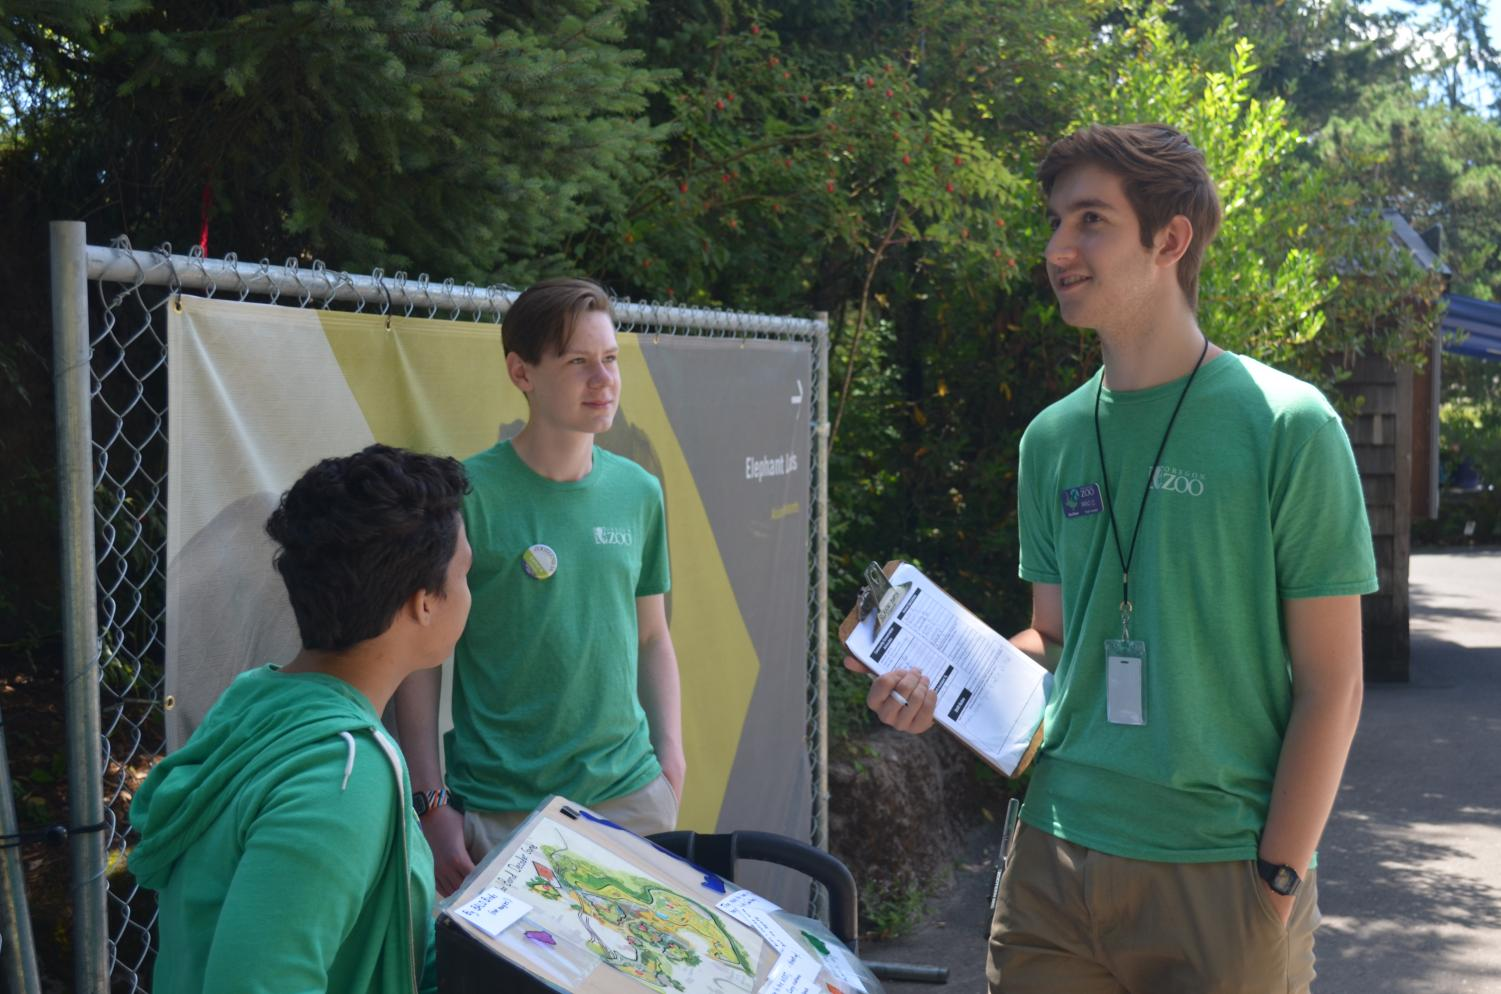 As a team leader, Callahan checks in with two ZooTeen interpreters who are running an activity about the Oregon Zoo bond measure.